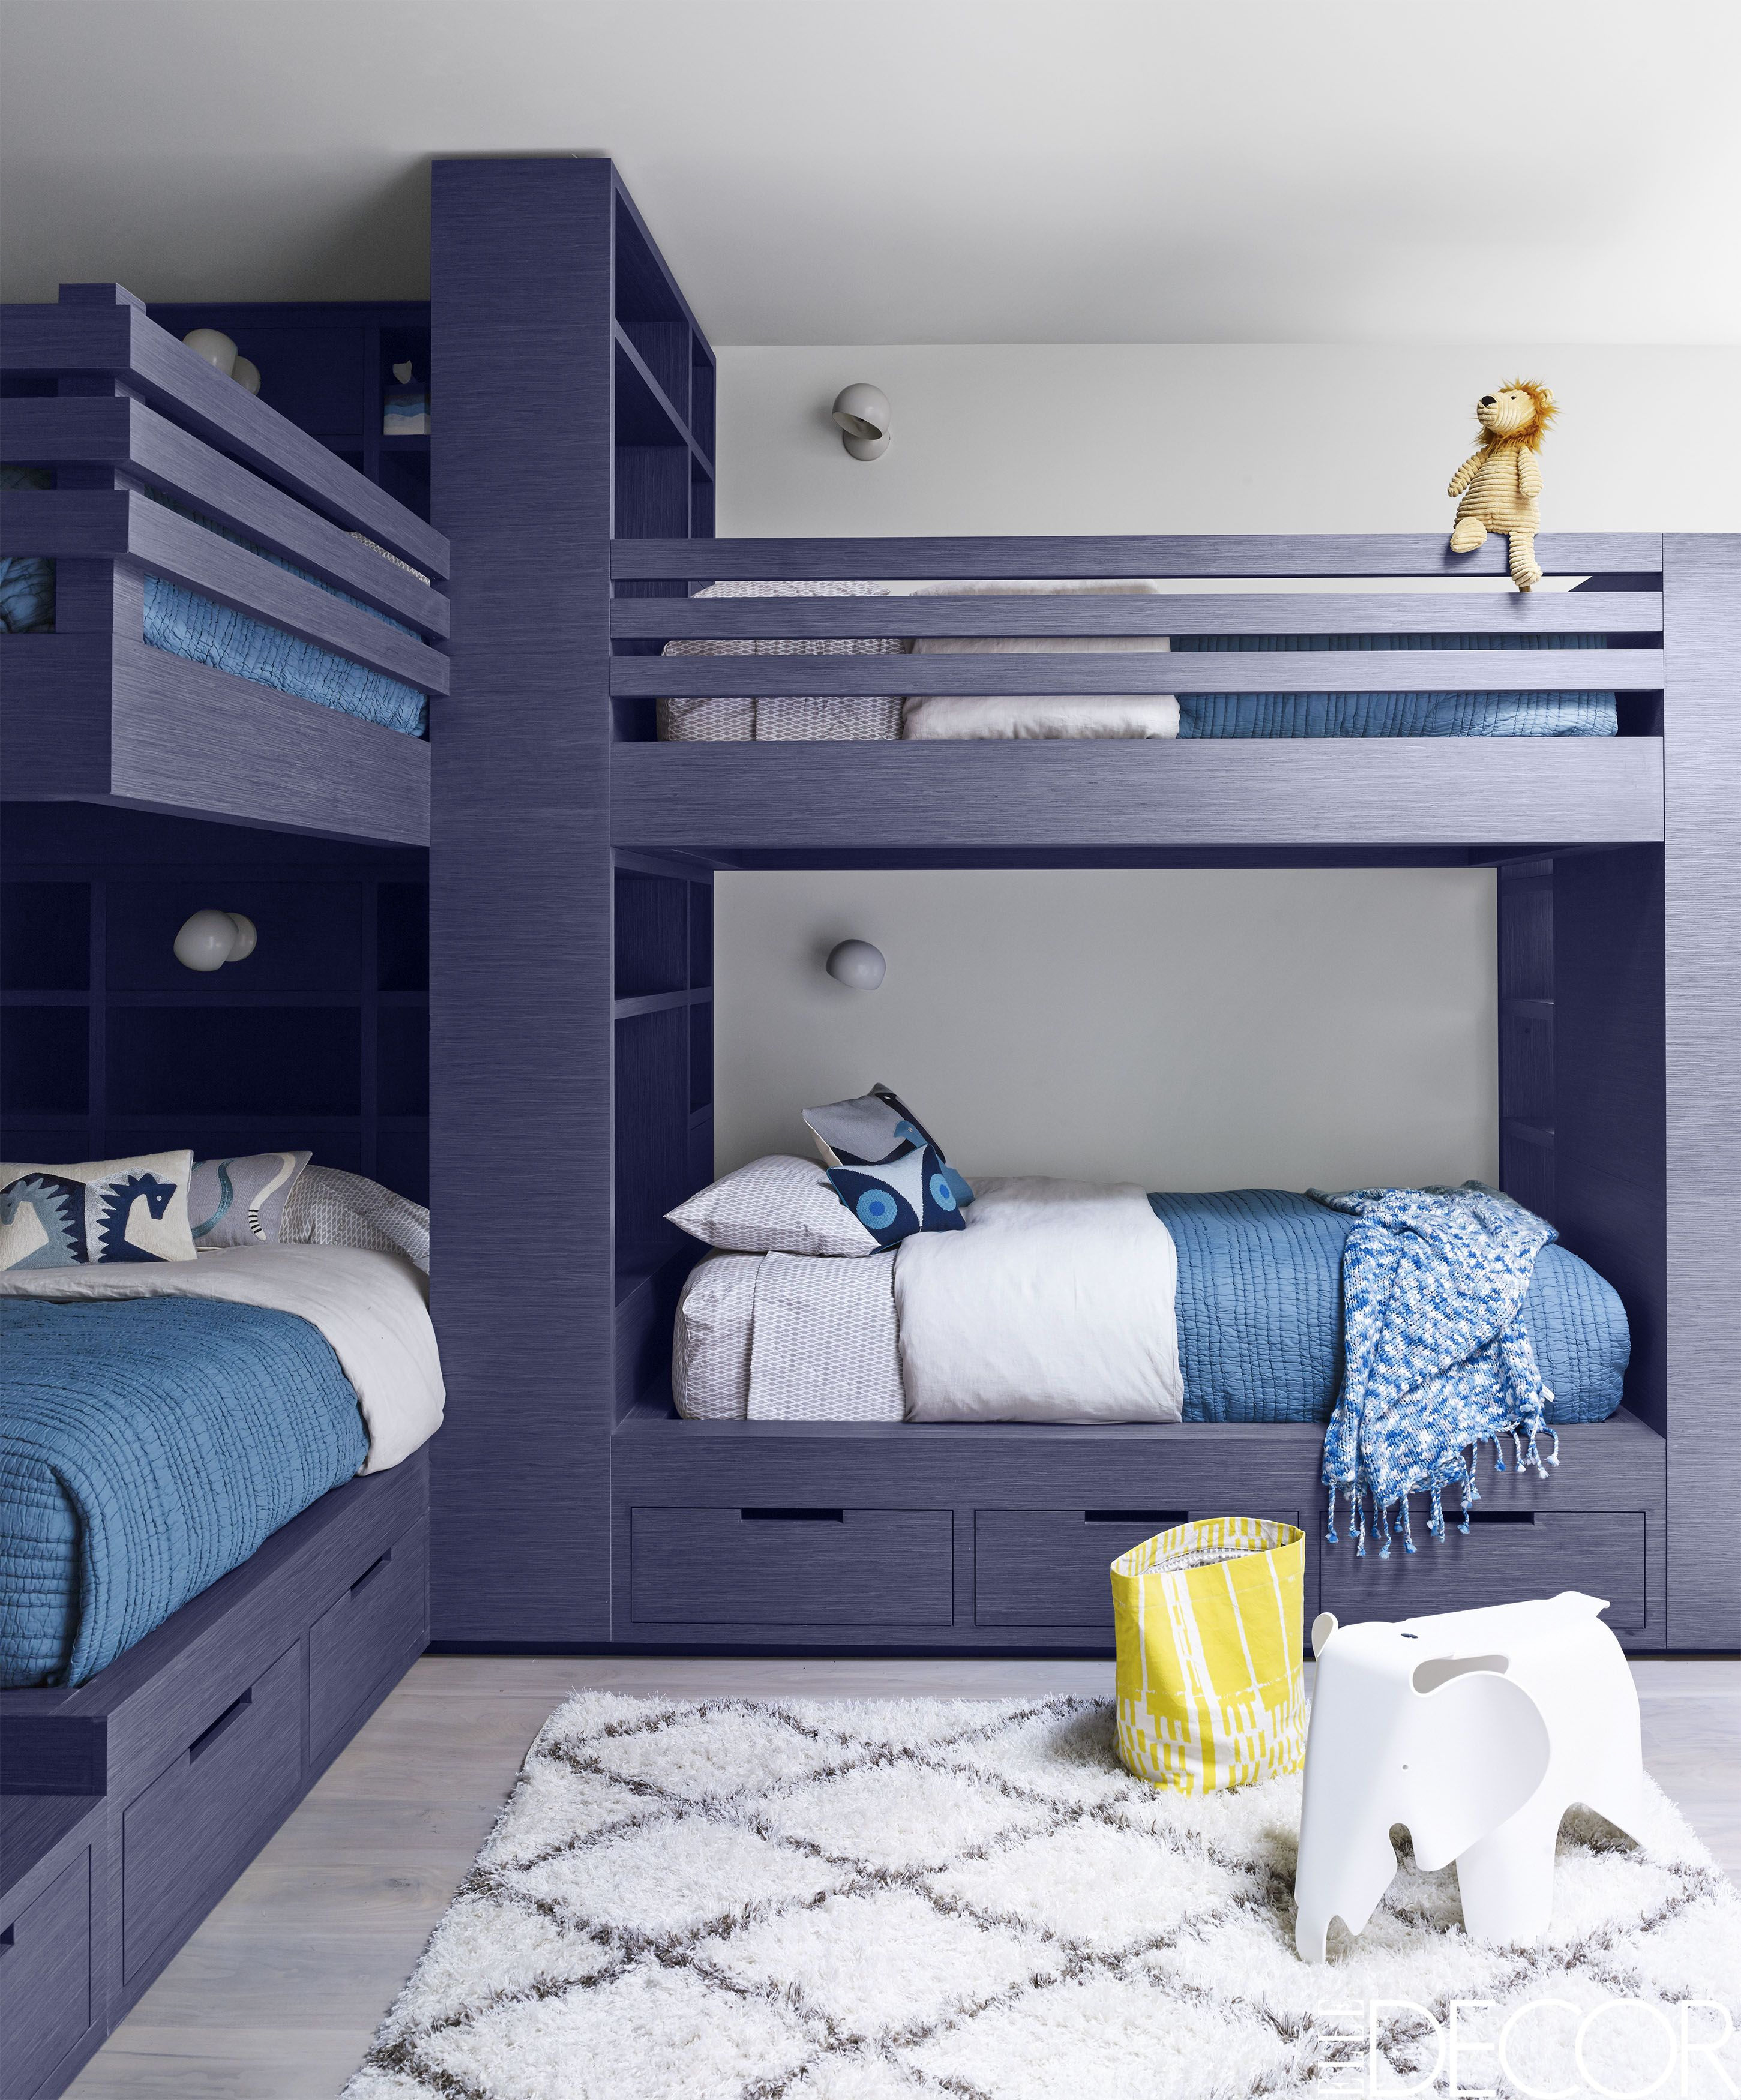 11 Incredible Bunk Beds That Will Make You Wish You Had A Roommate